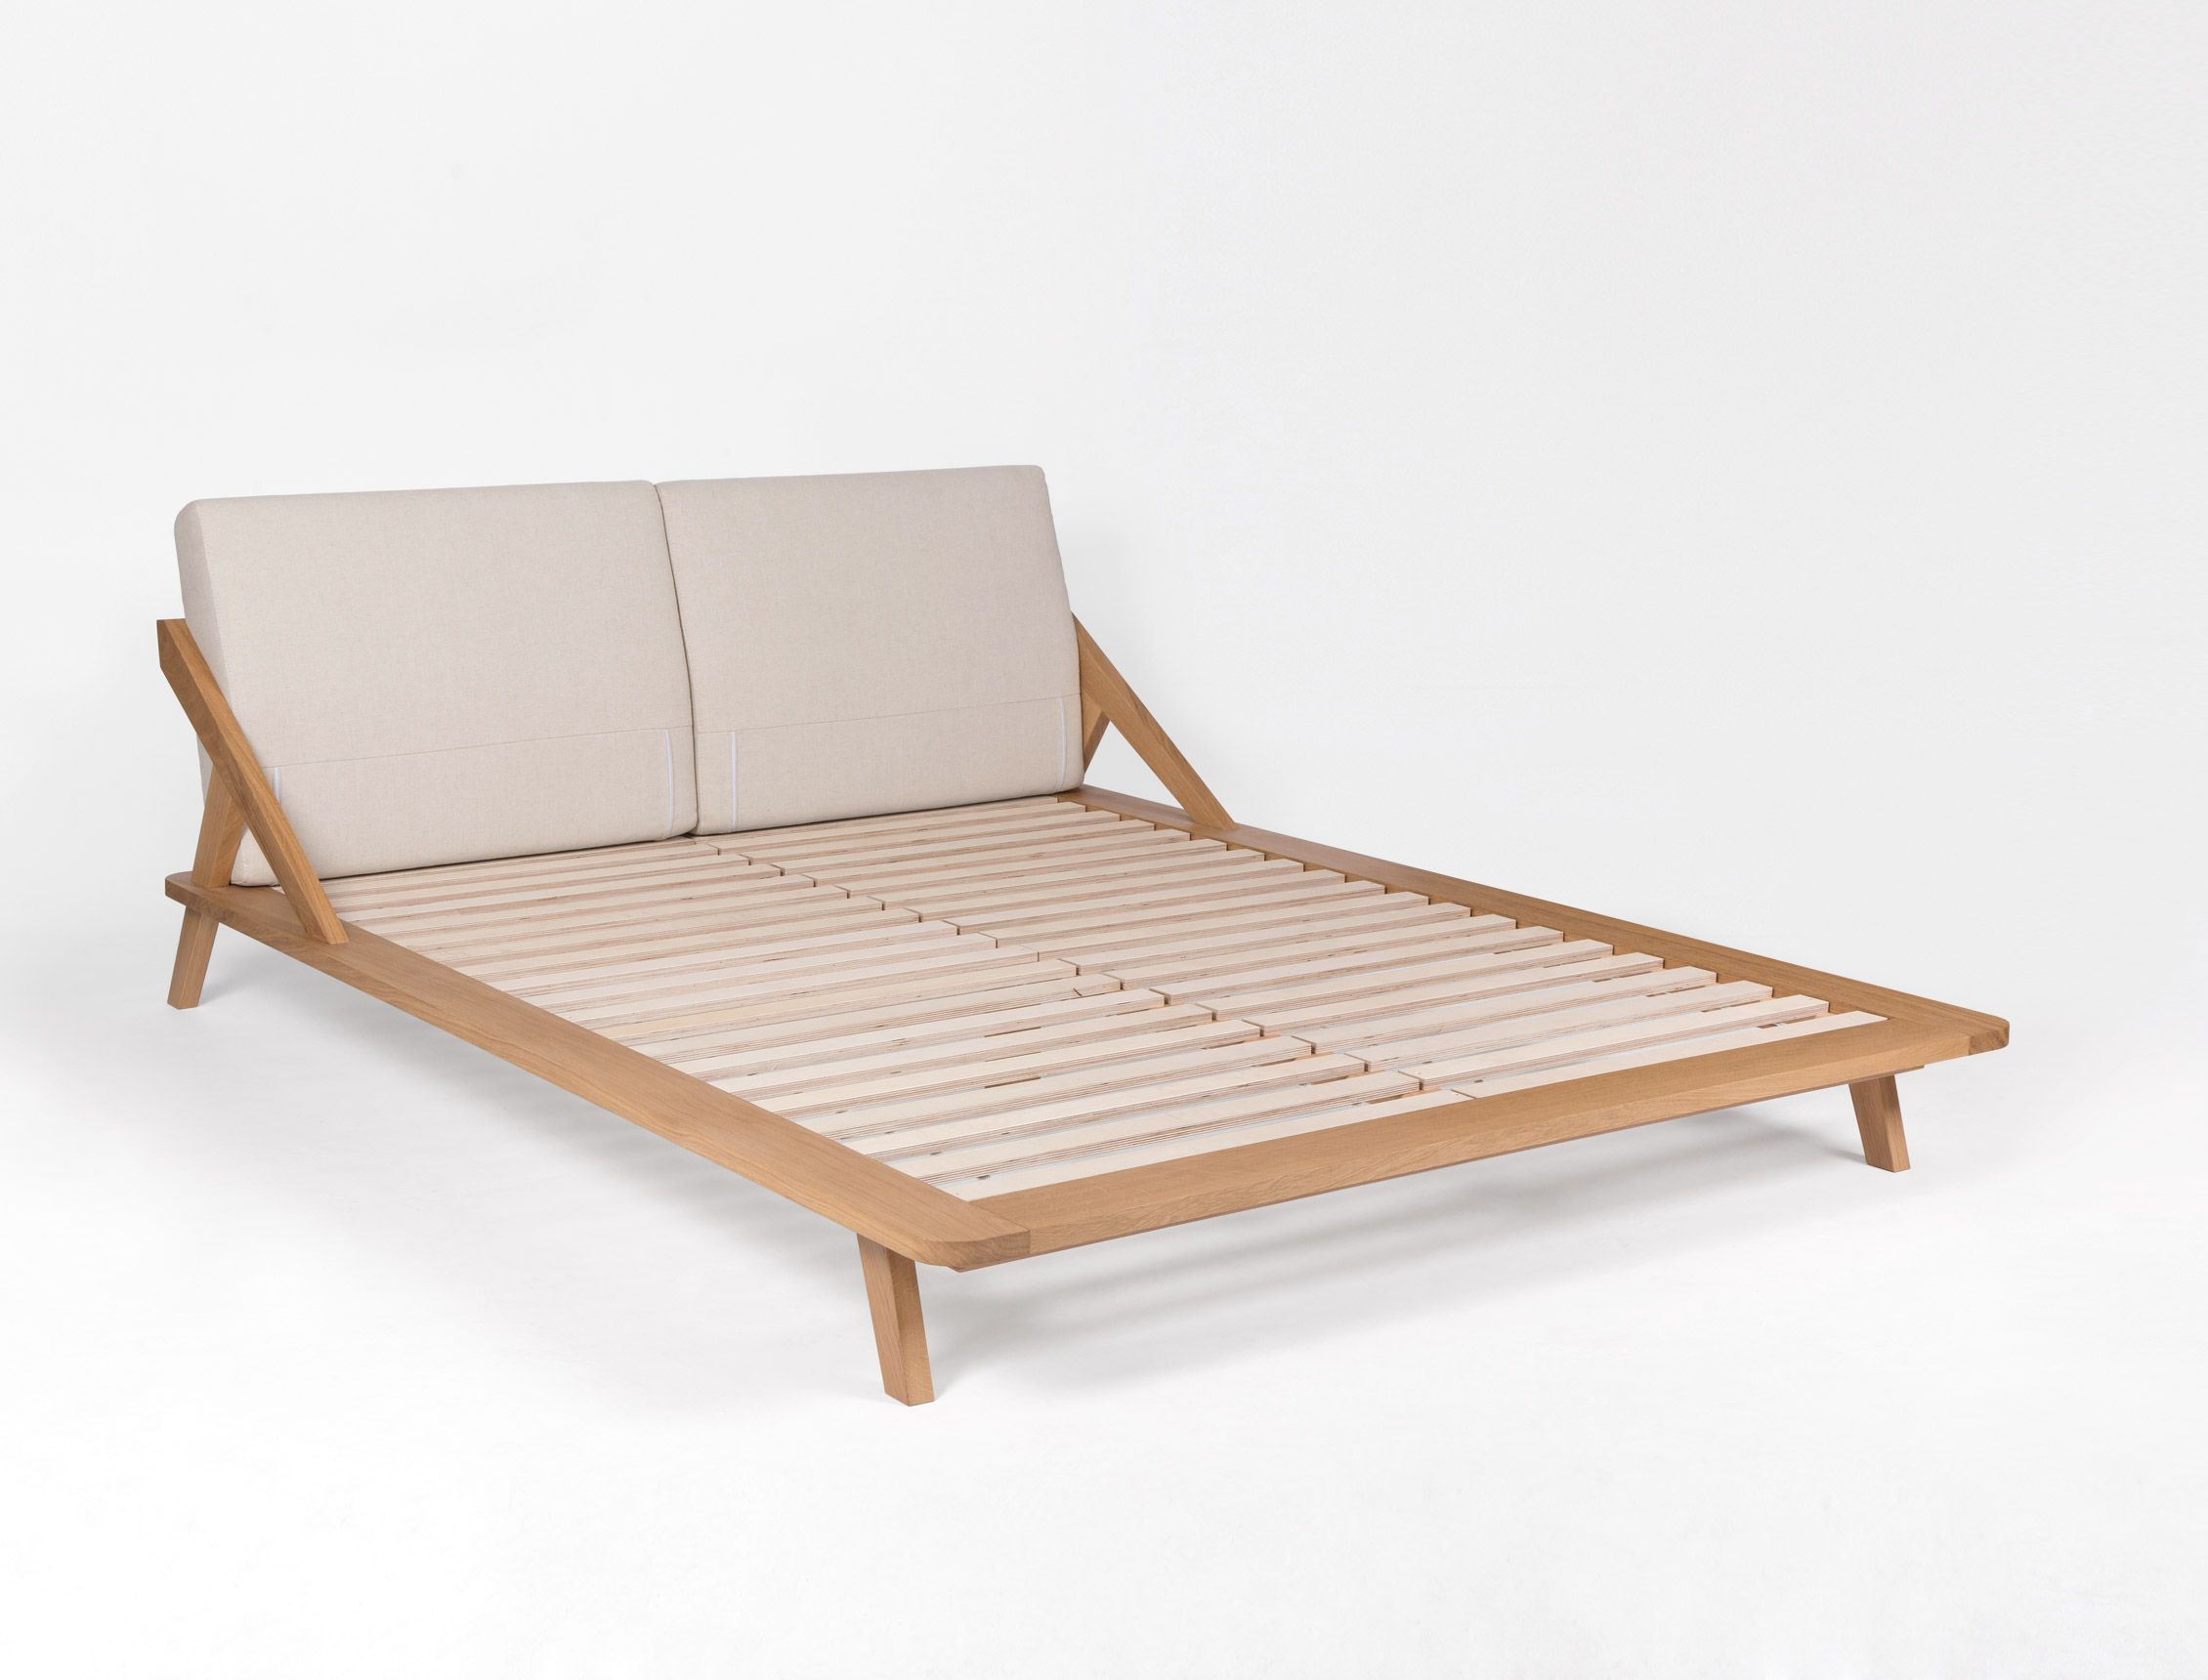 Nordic Space Bett | Bedrooms, Wooden bed base and Bed frames